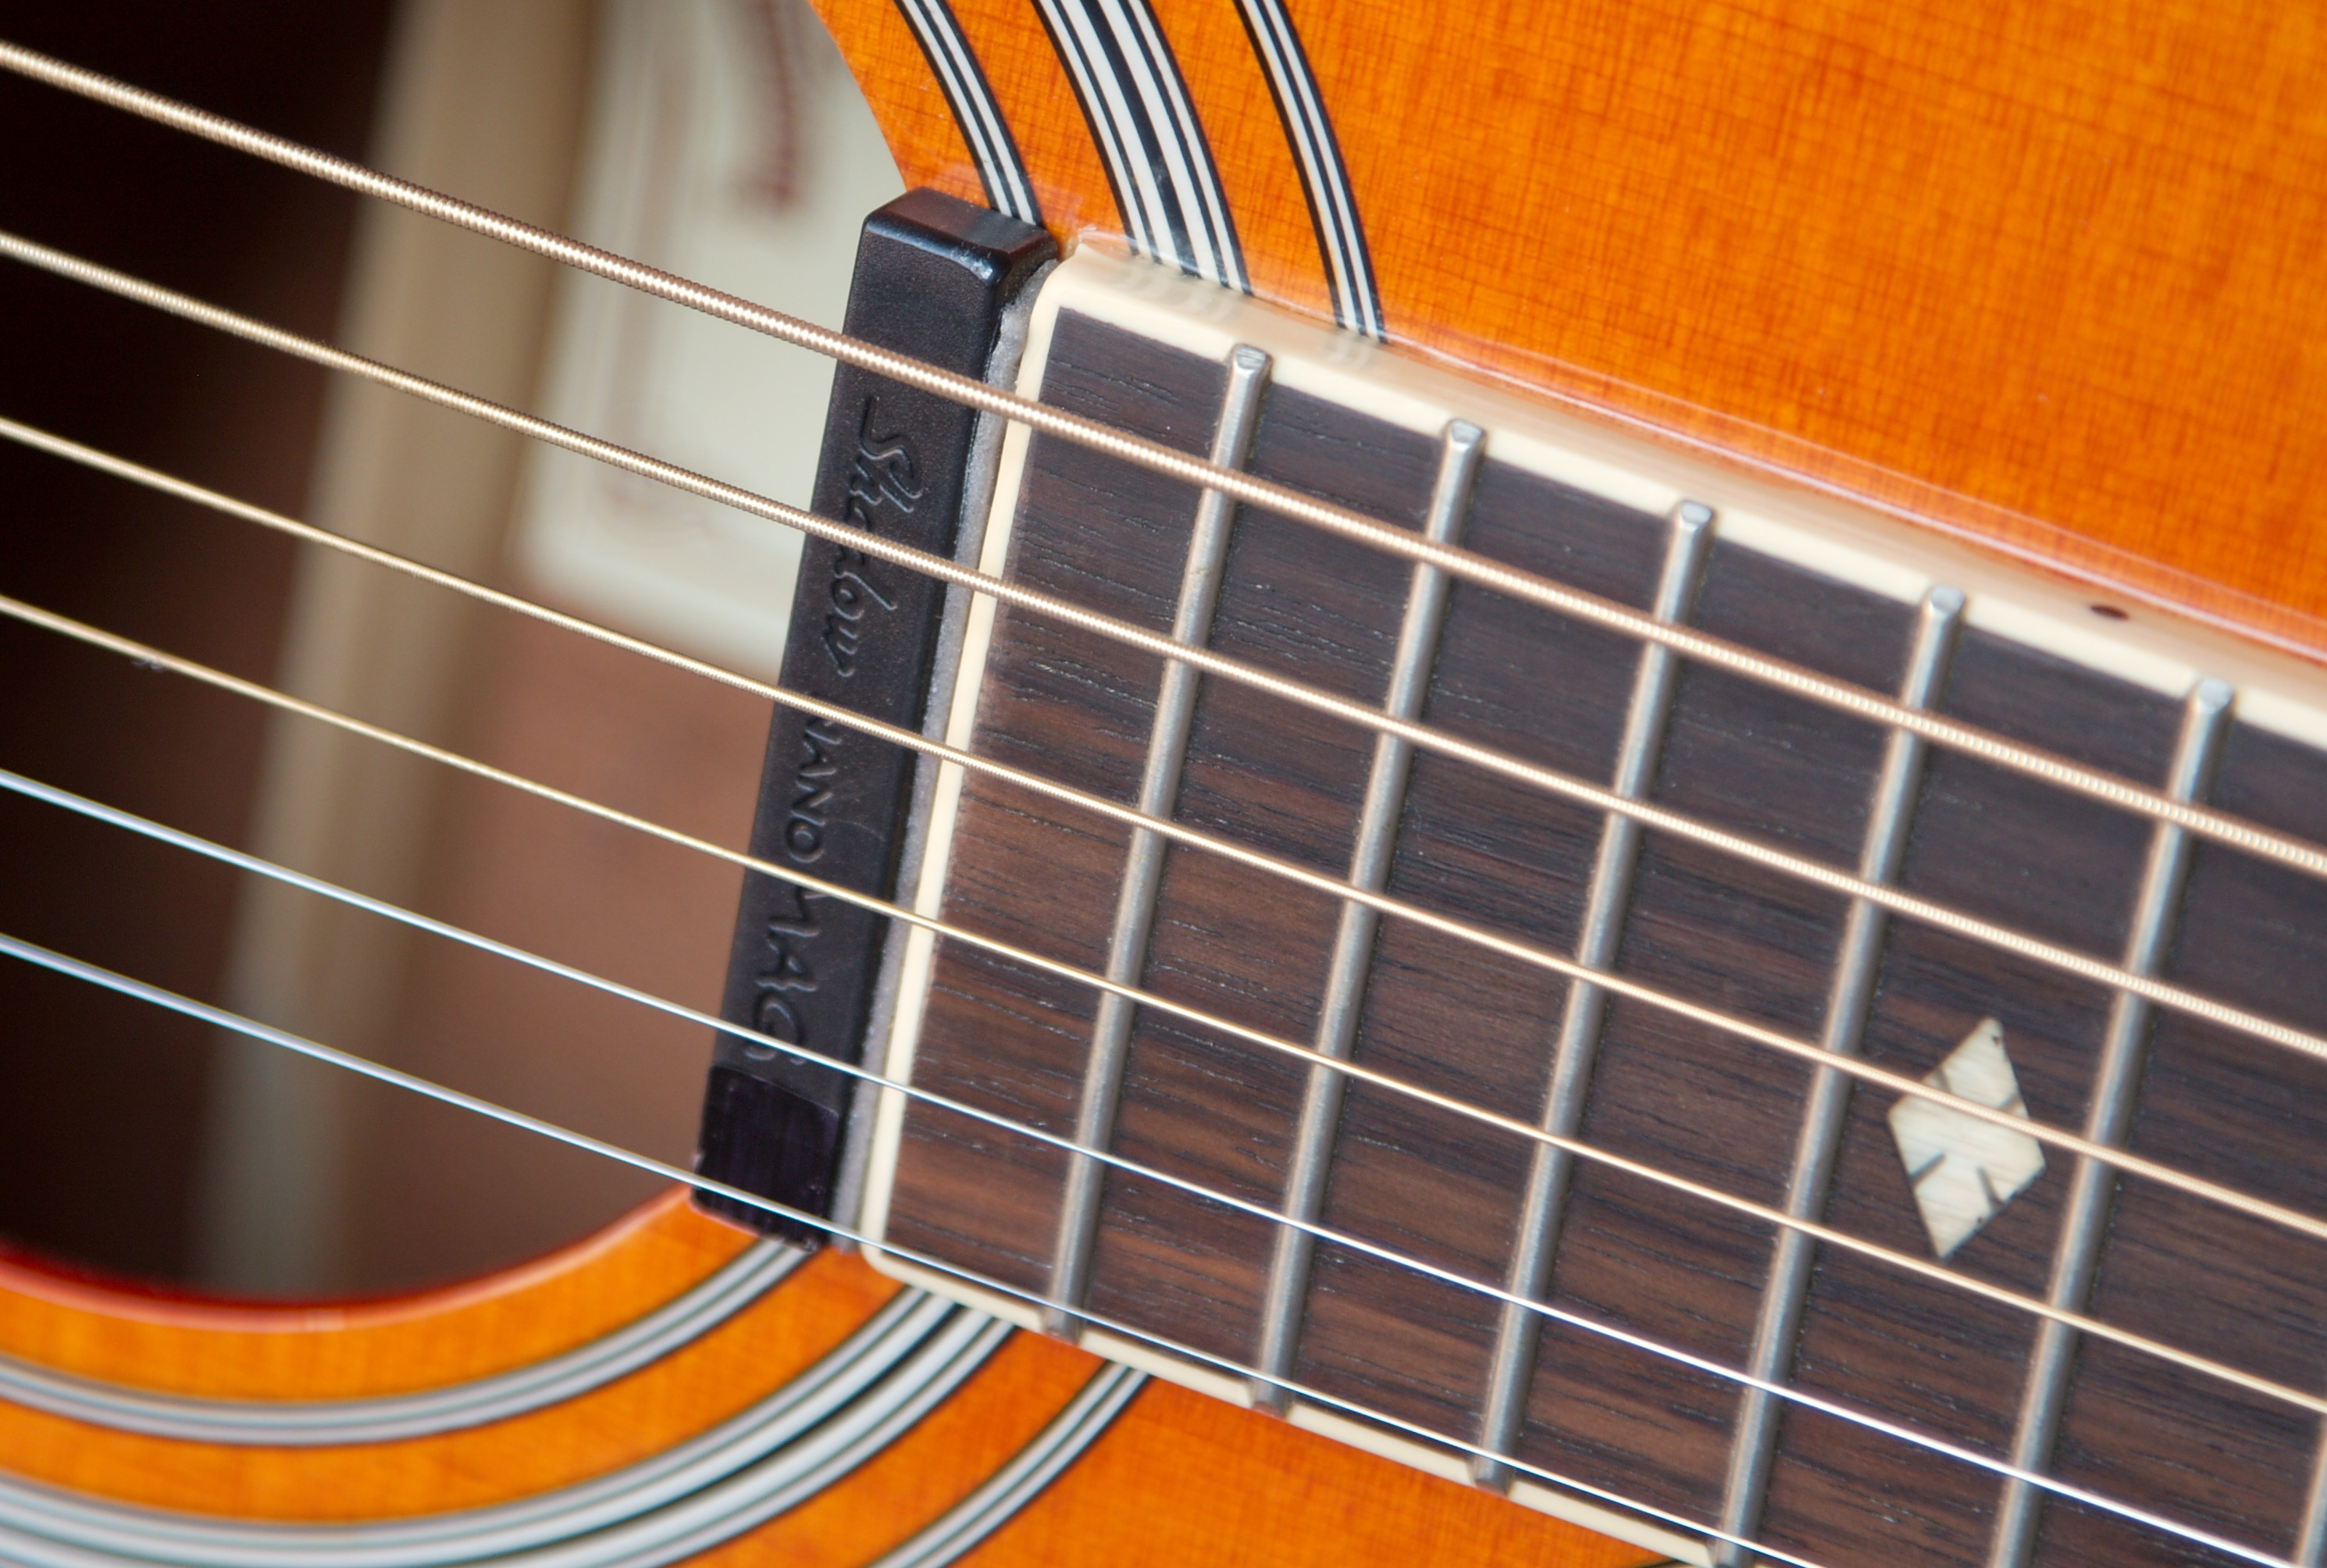 Guitar Chords Chart Download: Close-up of Guitar · Free Stock Photo,Chart